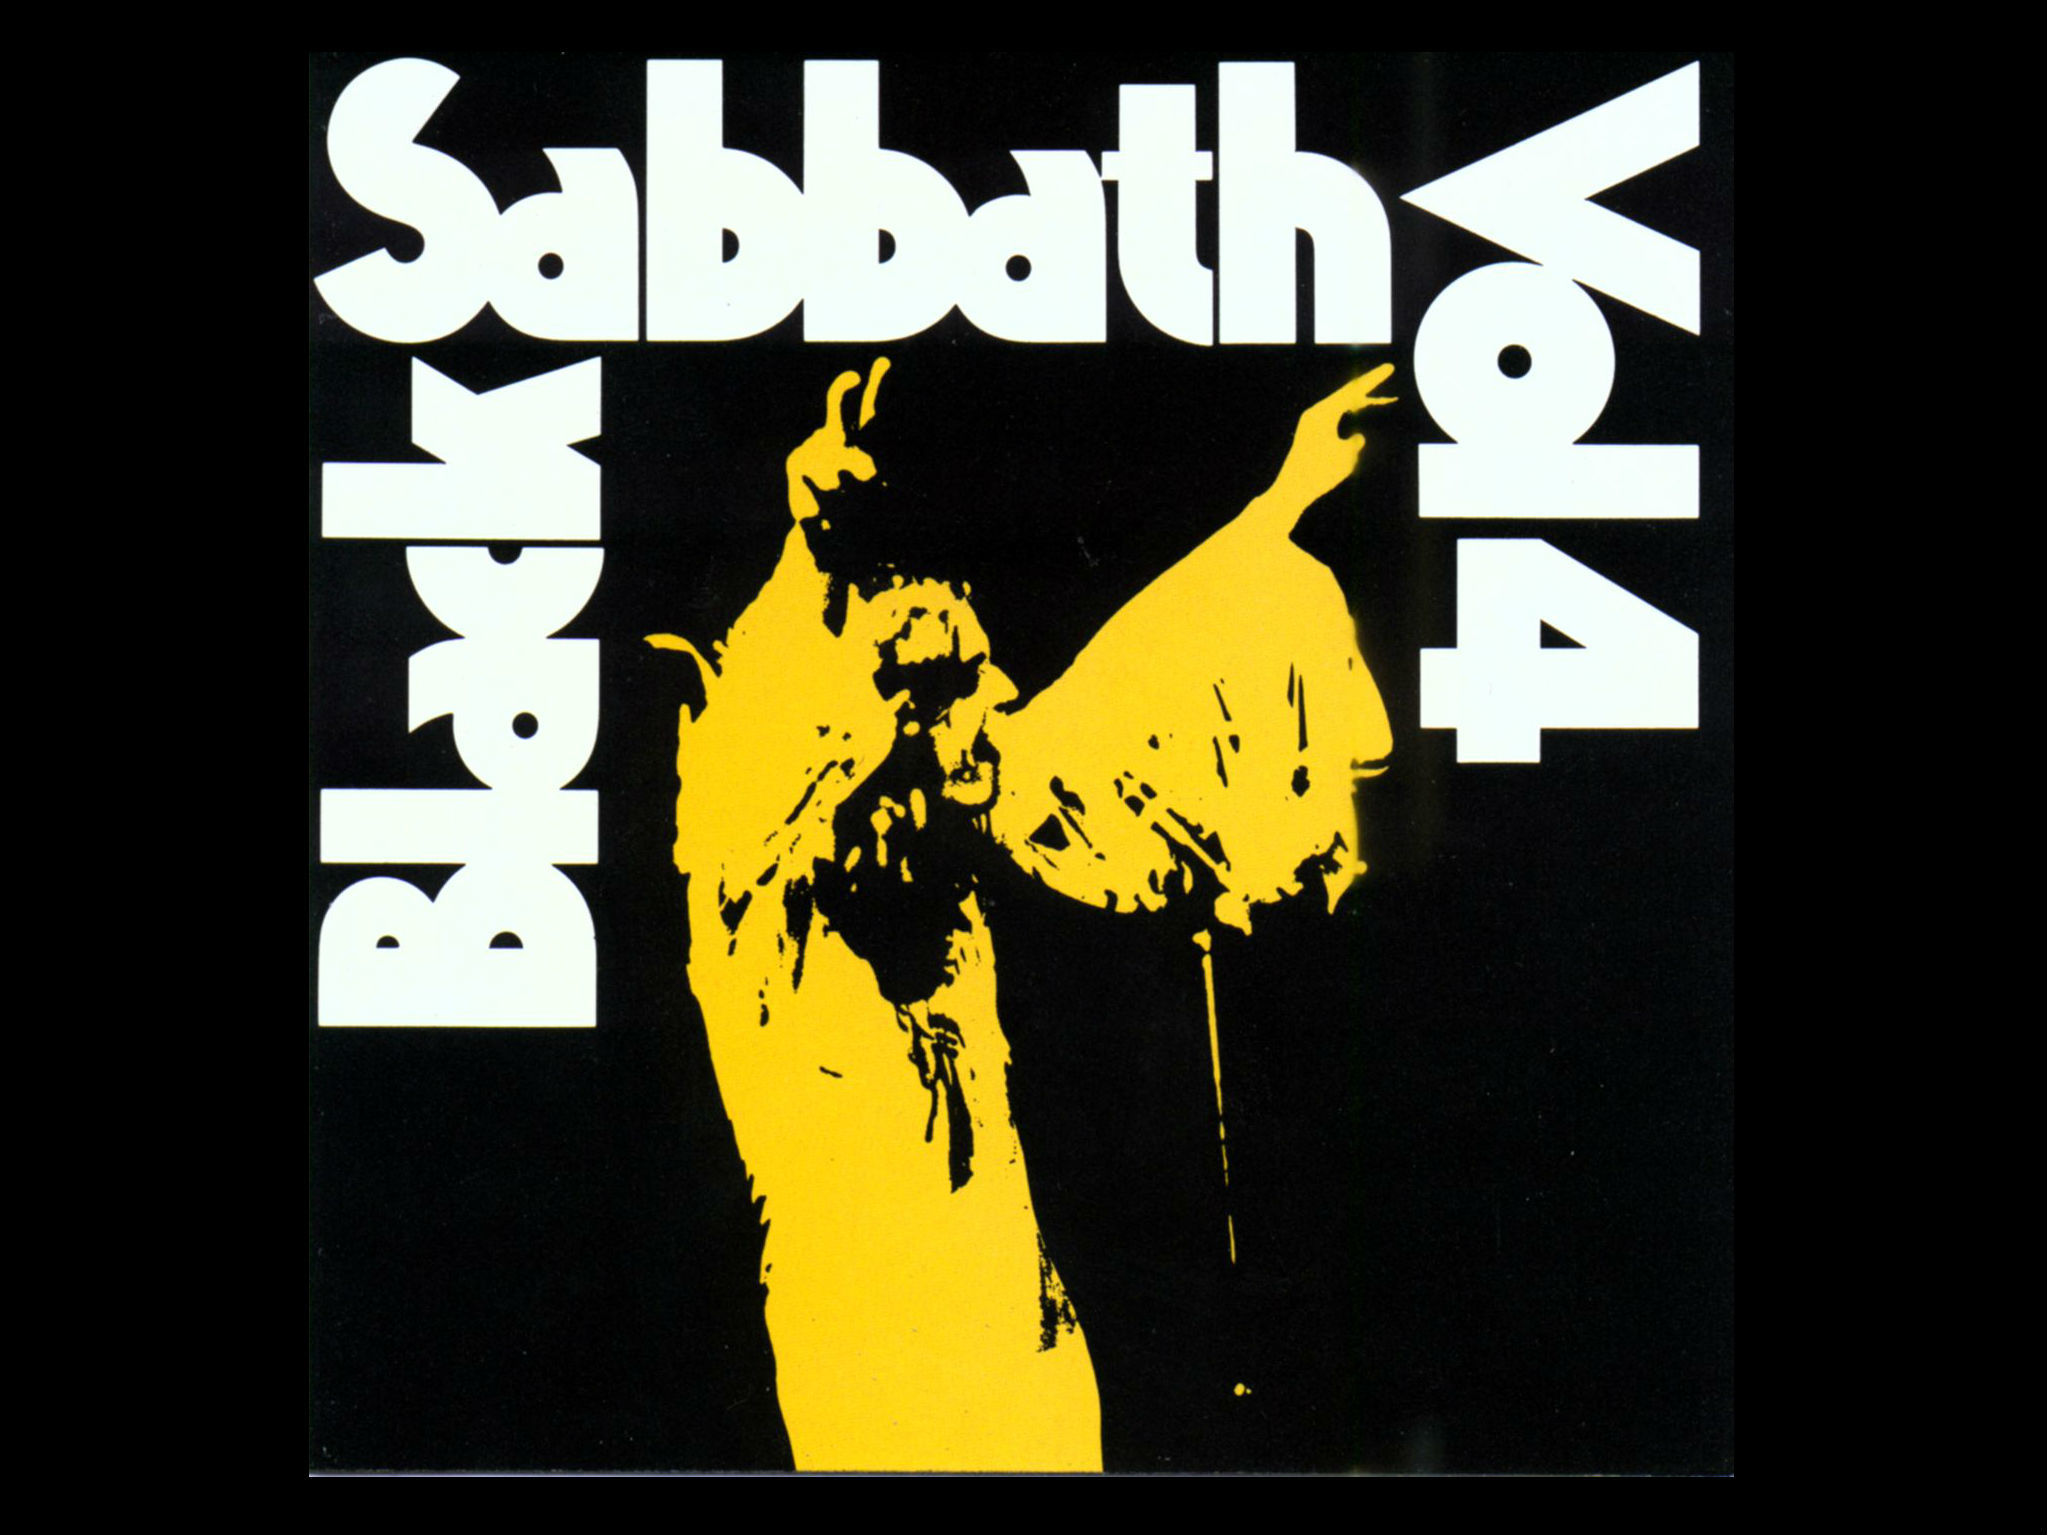 Black Sabbath vol 4, 1972